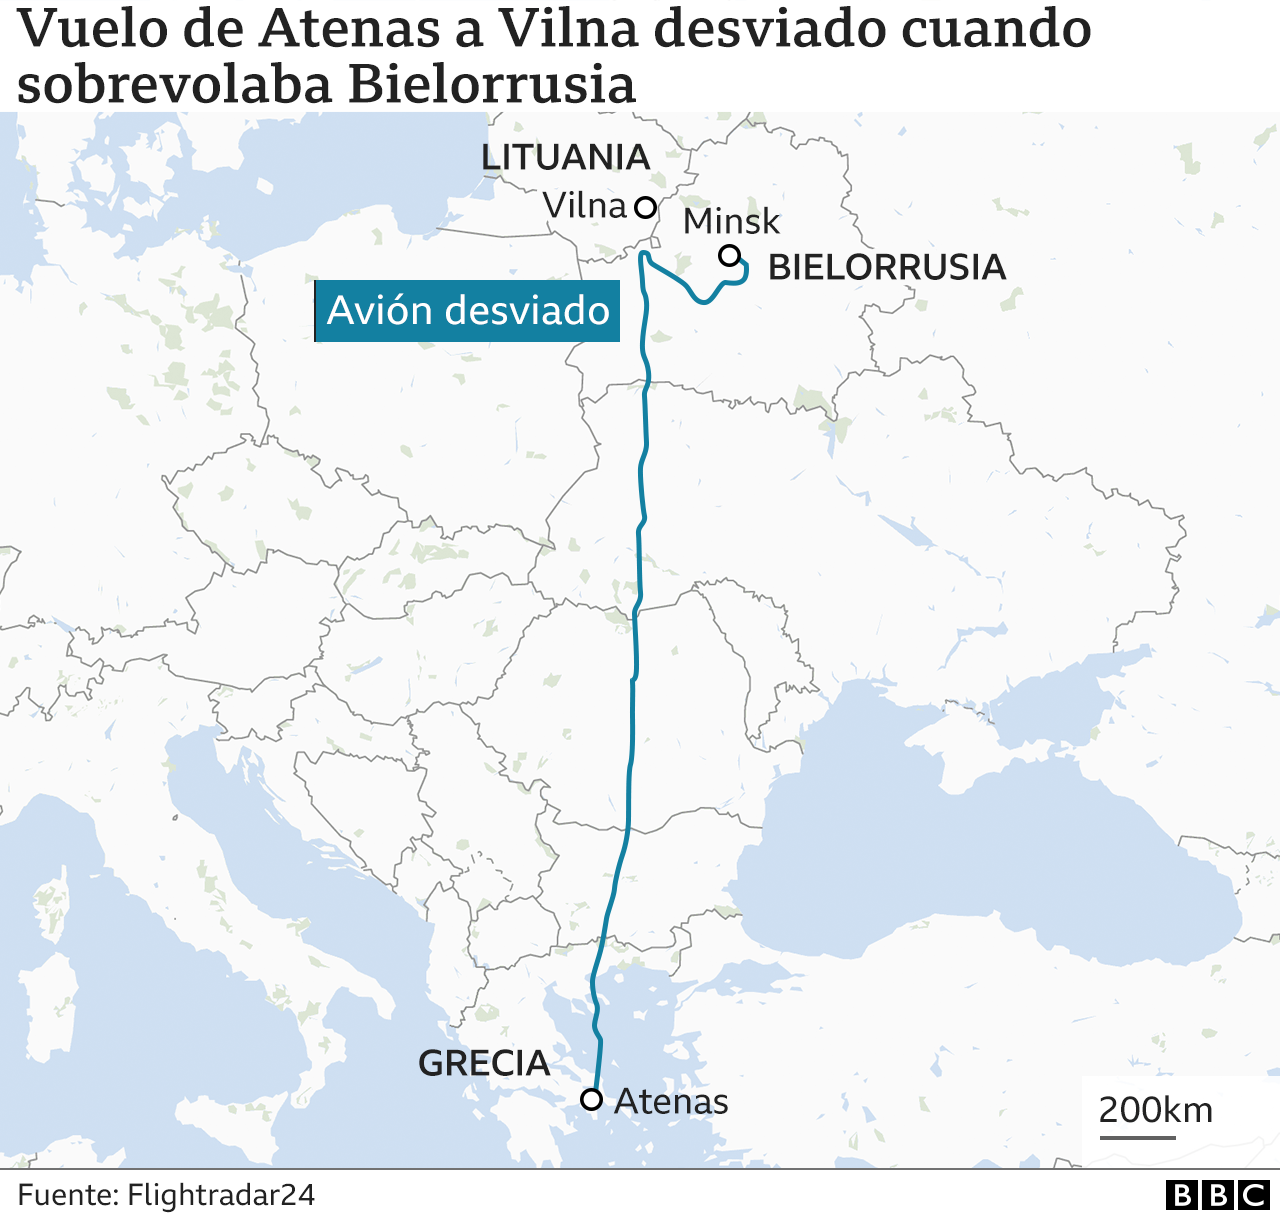 Route of the deviated flight